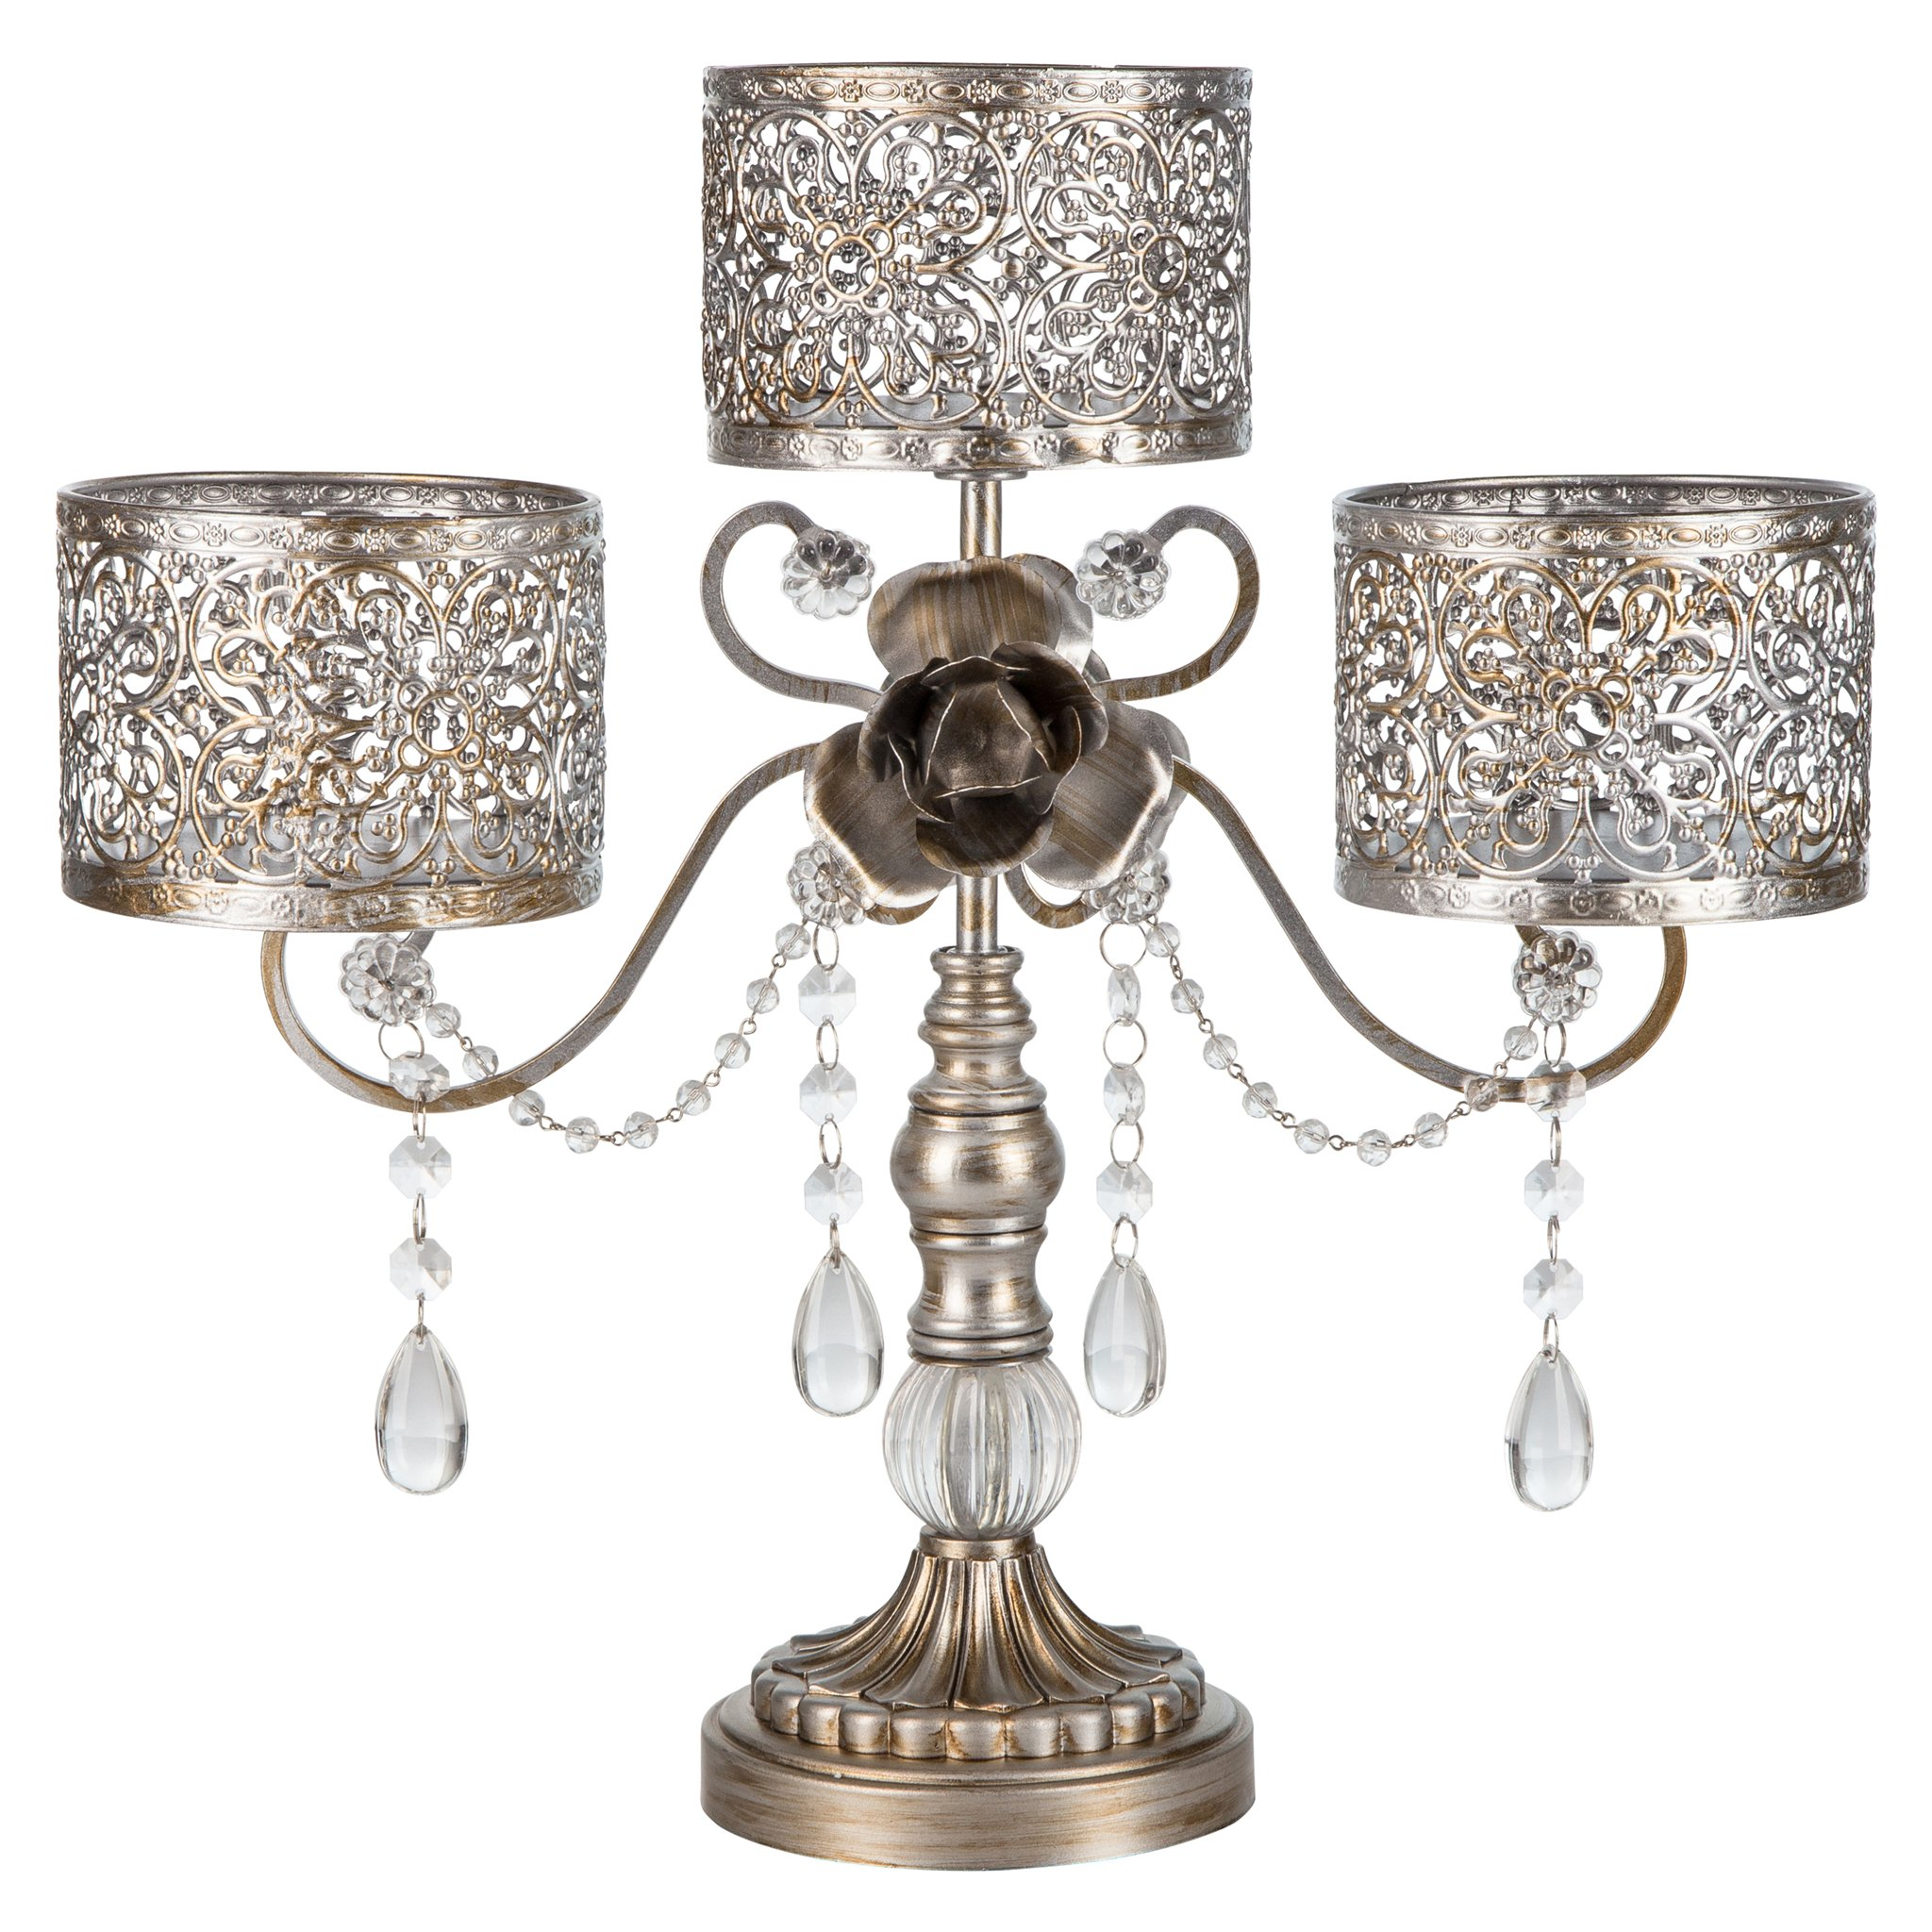 Amalfi Decor Antique 3 Pillar Crystal-Draped Hurricane Candle Holder Centerpiece (Gold) | H | Stainless Steel Frame with... by